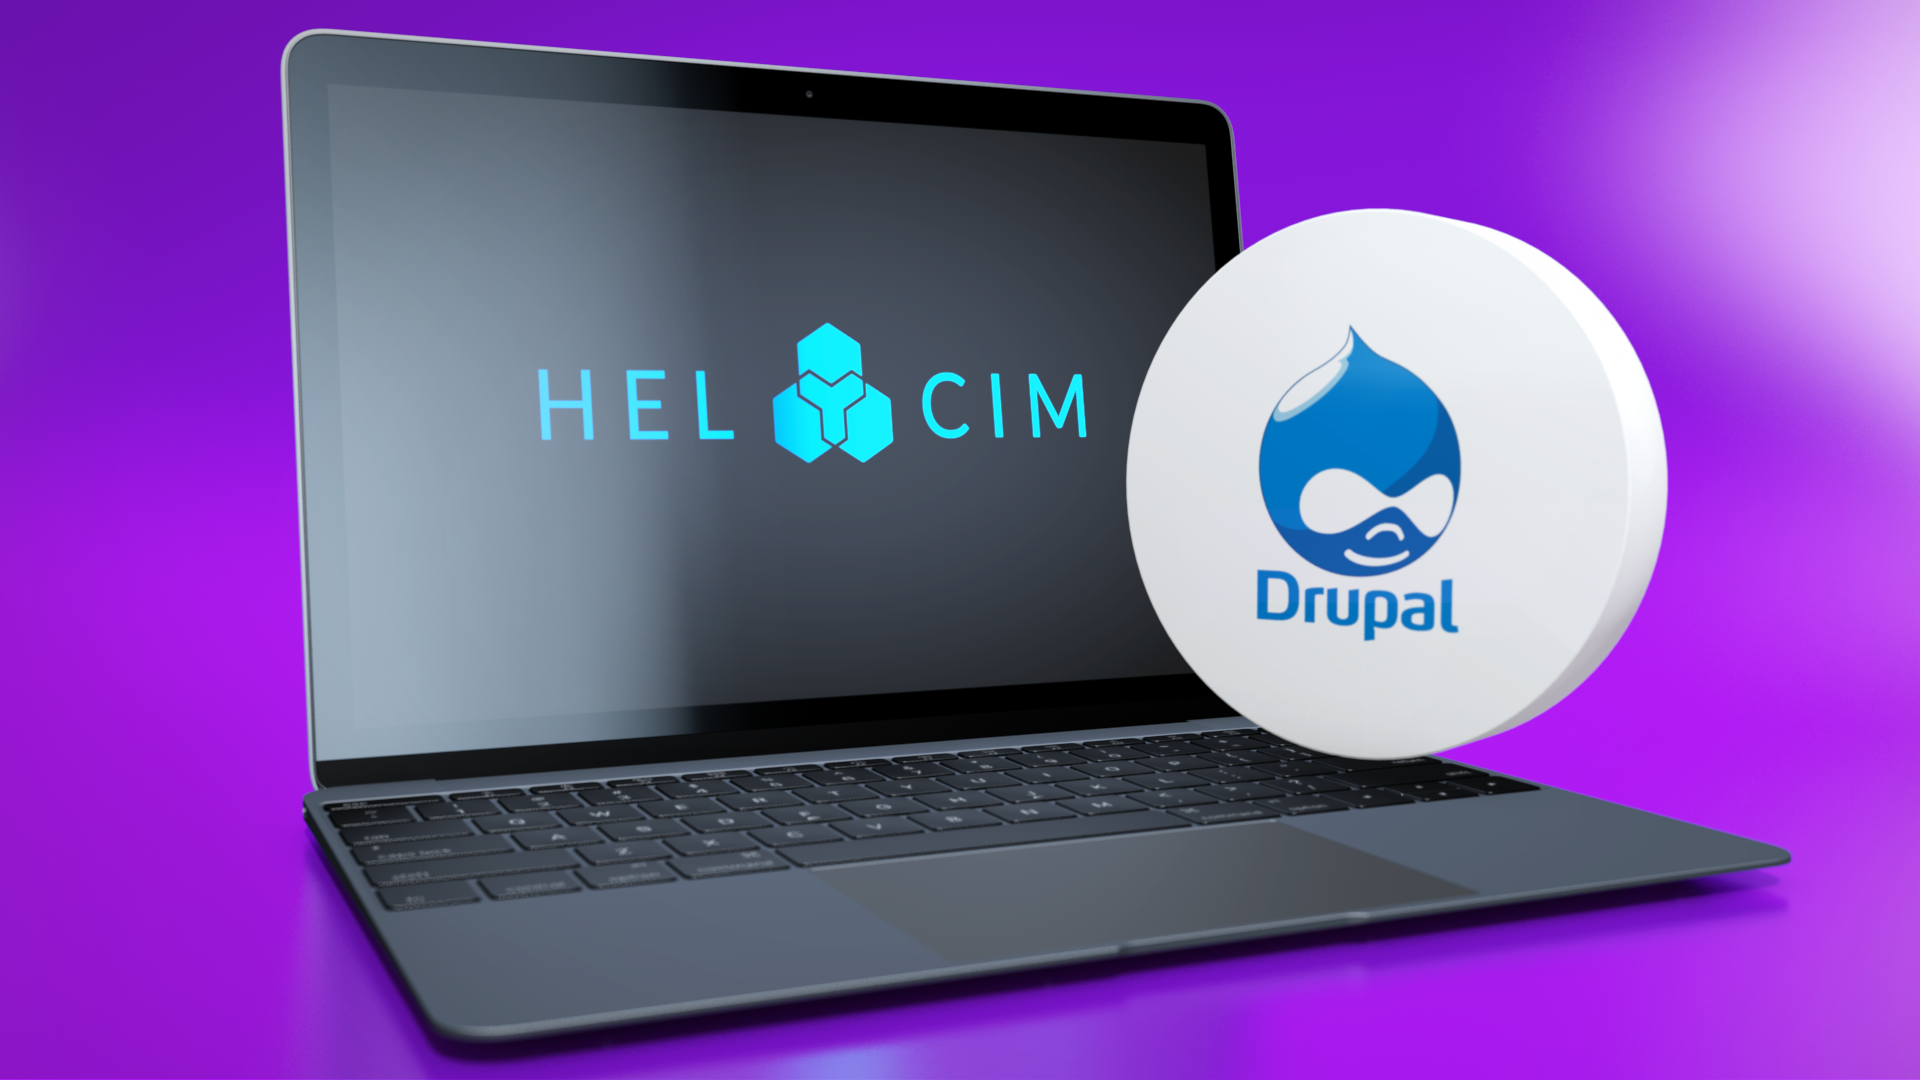 Drupal Payment Gateway Available with Helcim